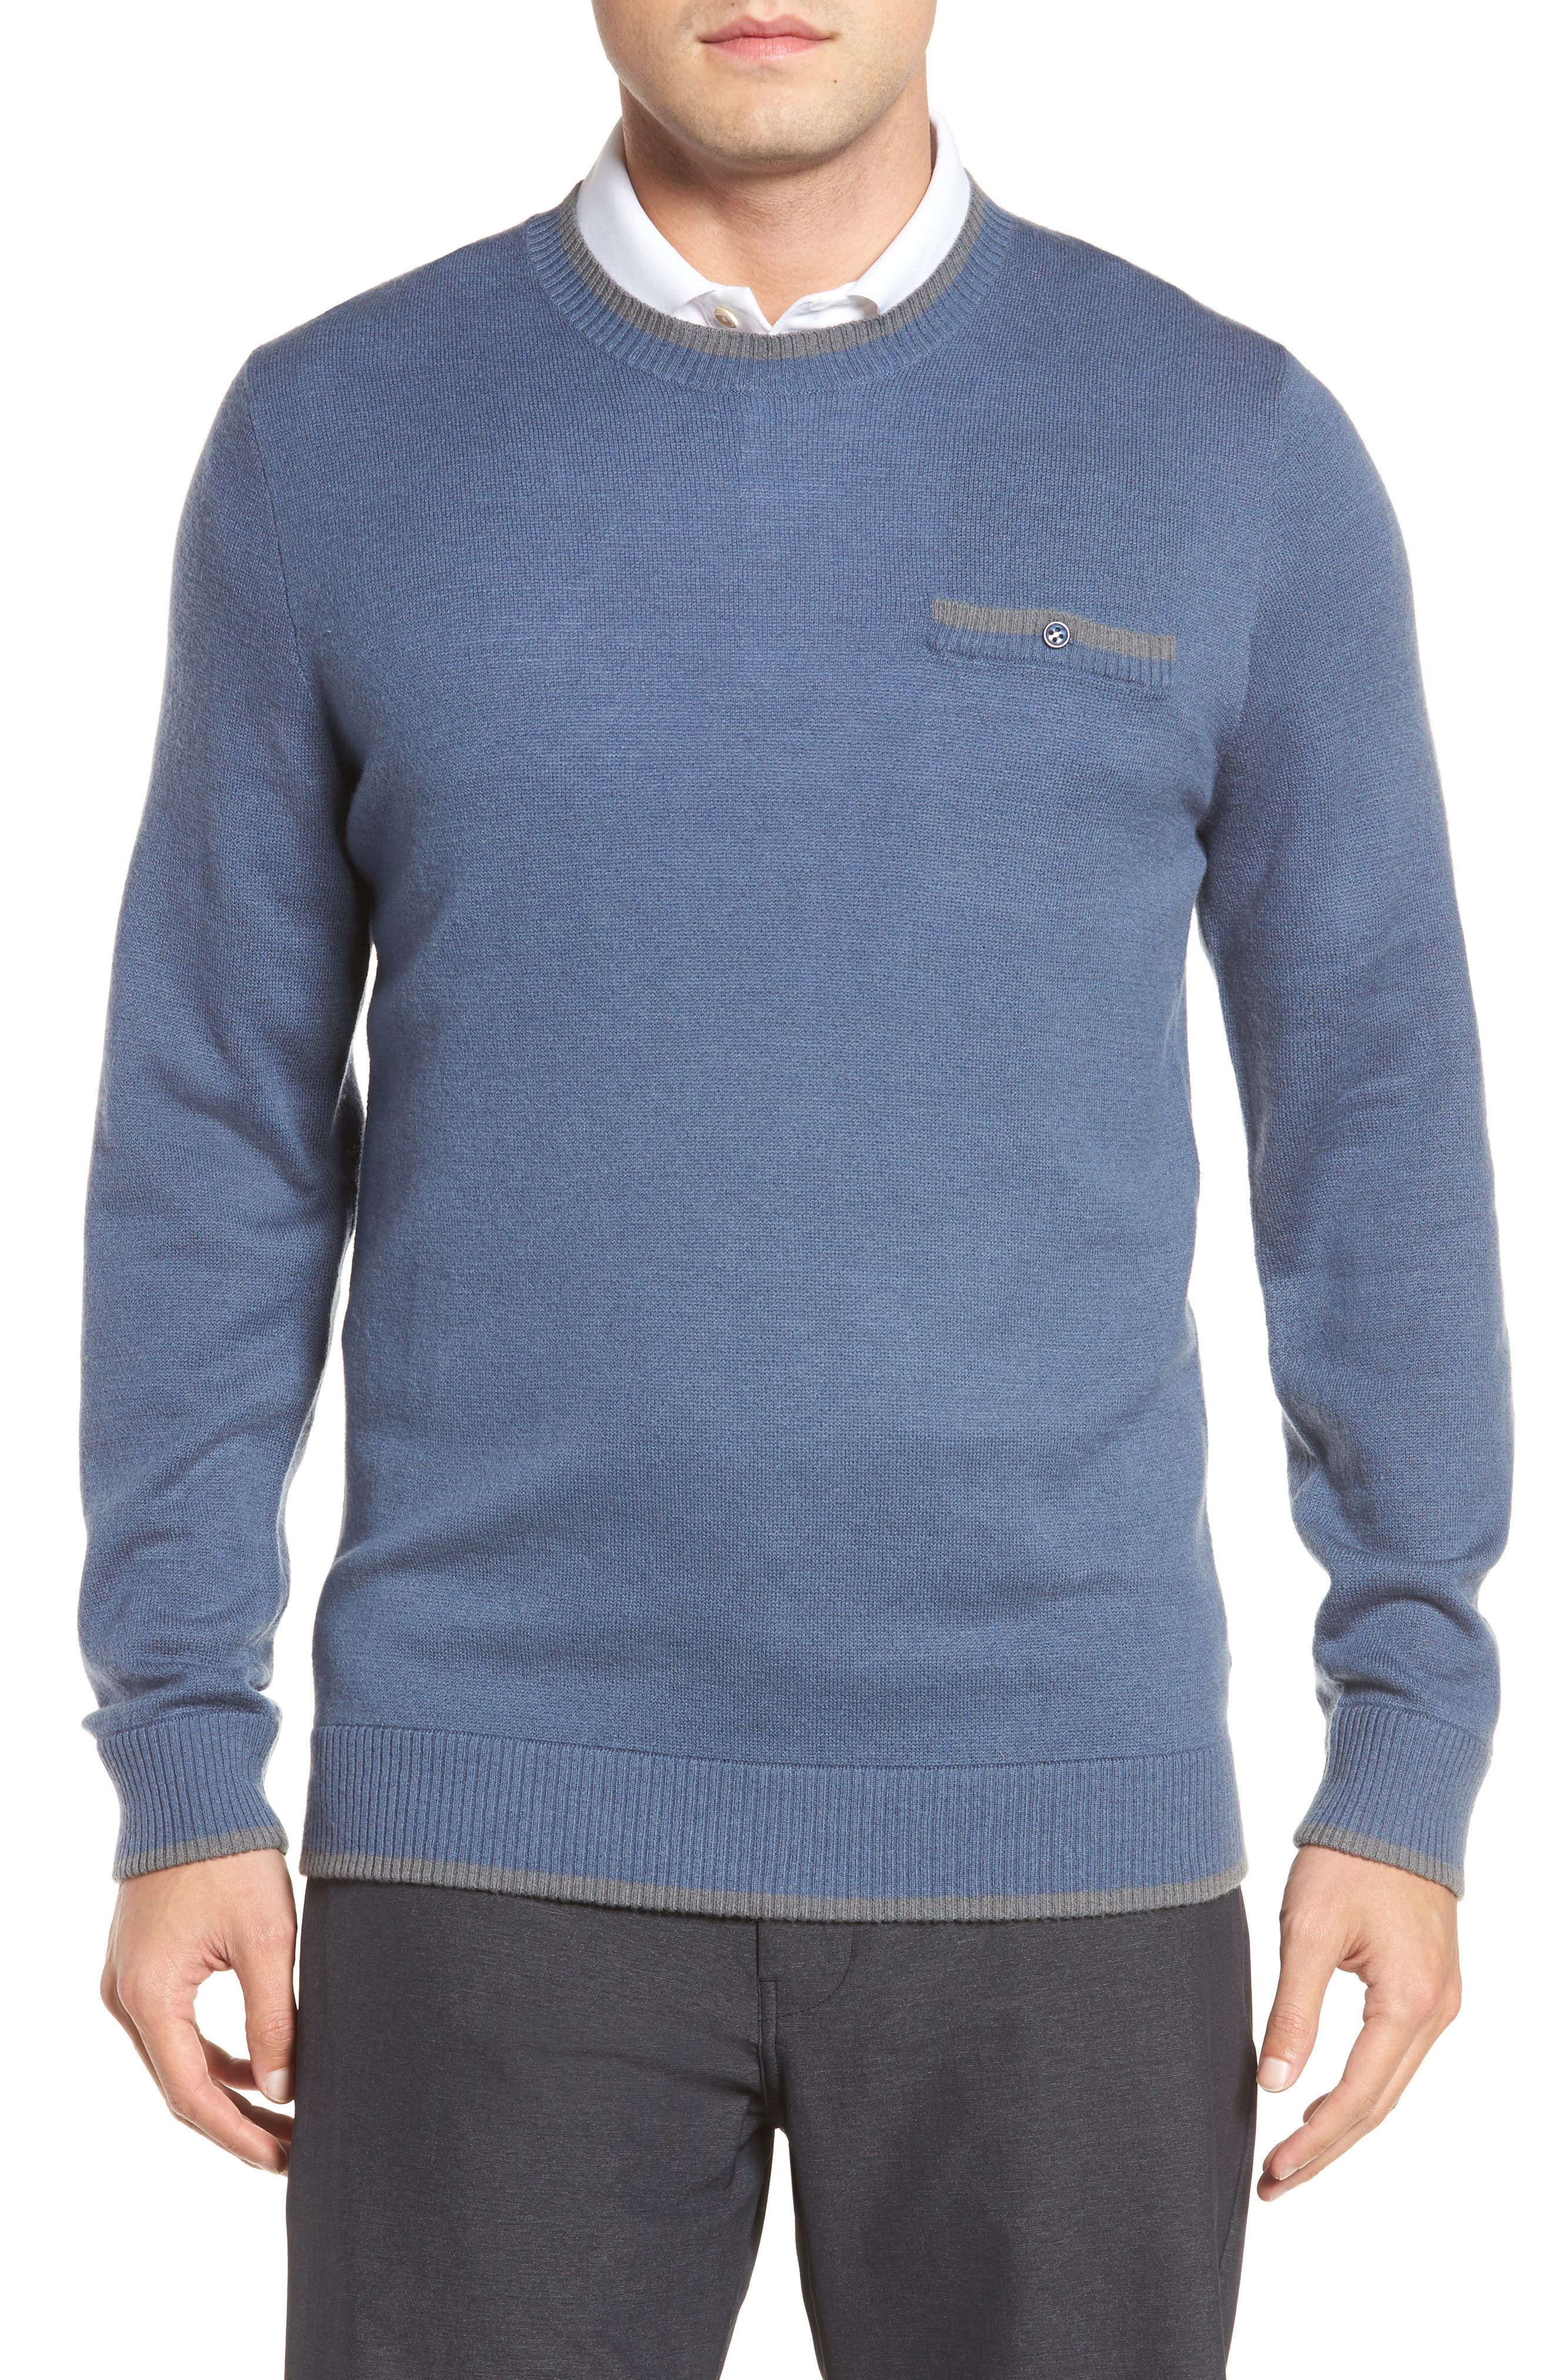 Paglia Wool Blend Sweater,                         Main,                         color, 400